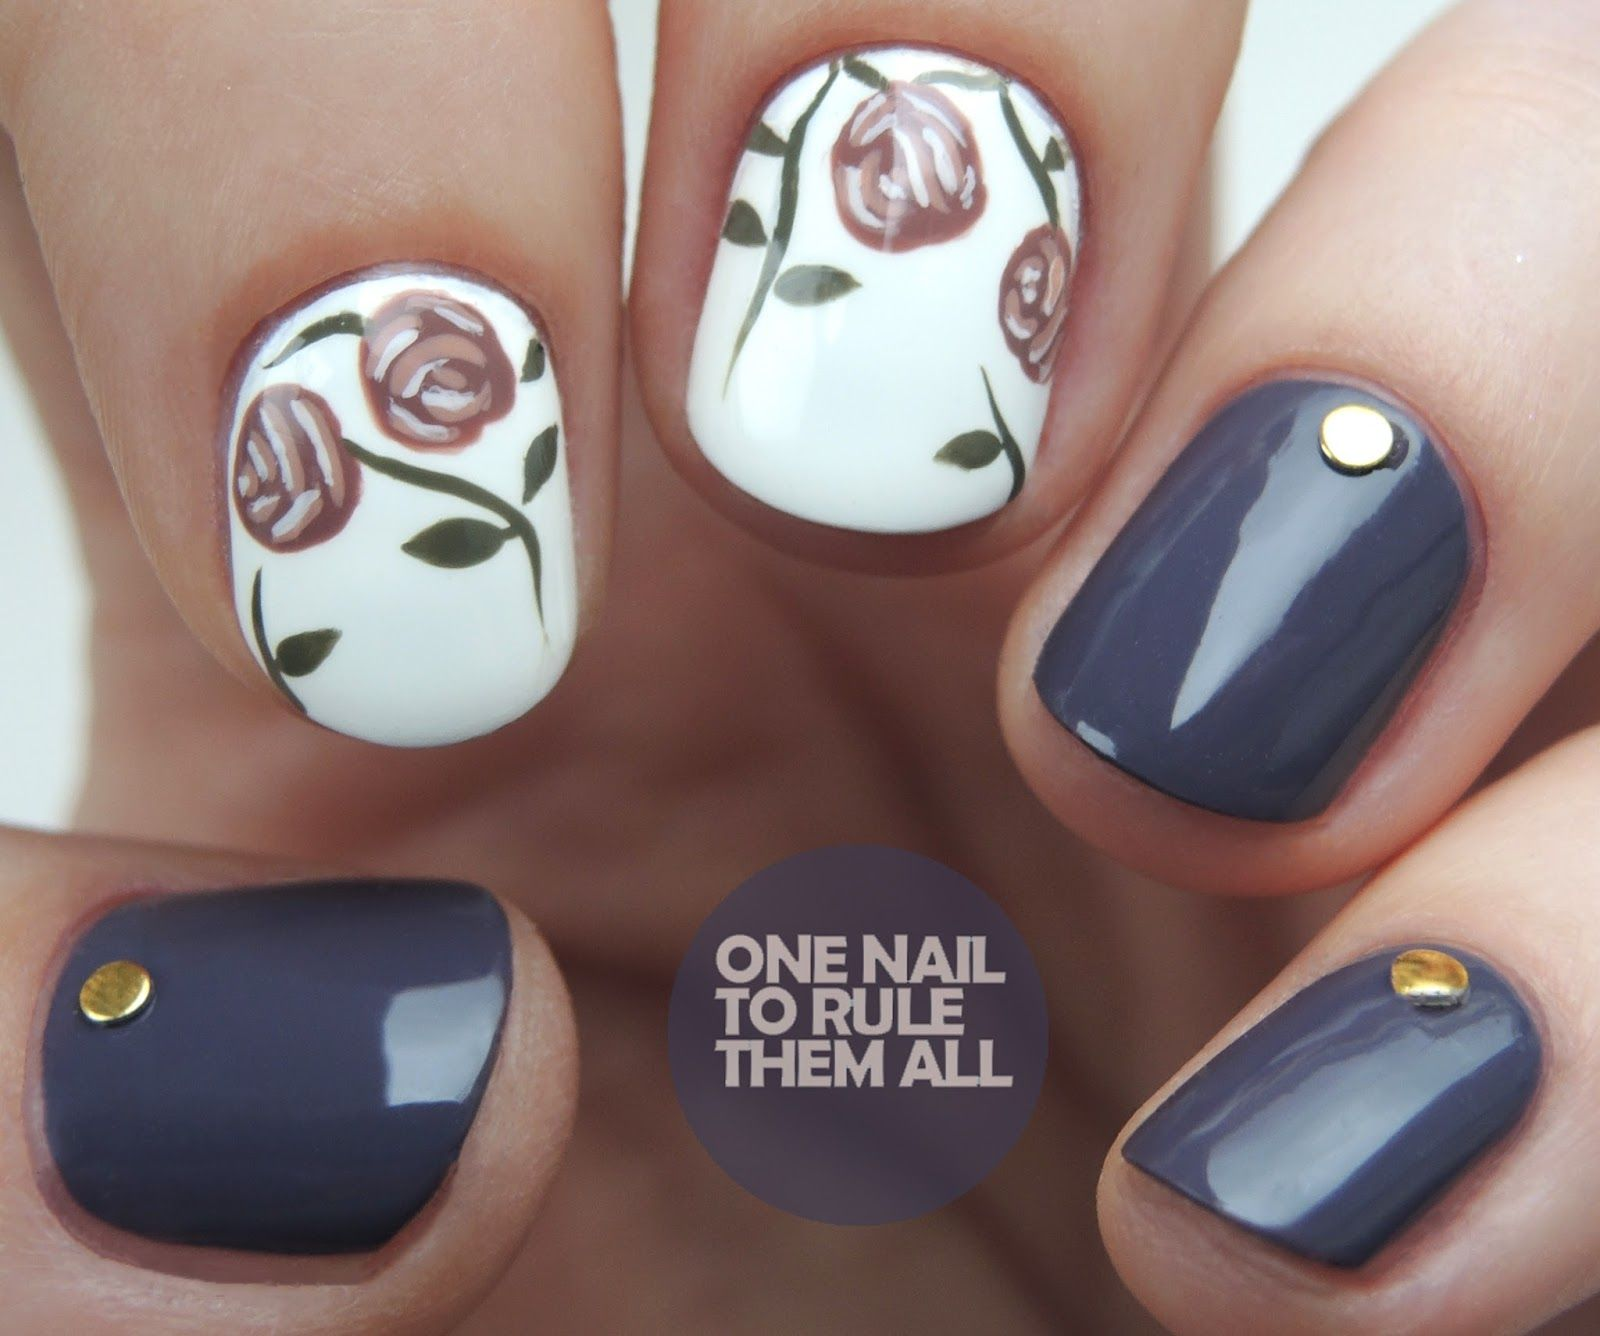 Award Winning British Nail Art Blog Nails Pinterest Nail Art Blog